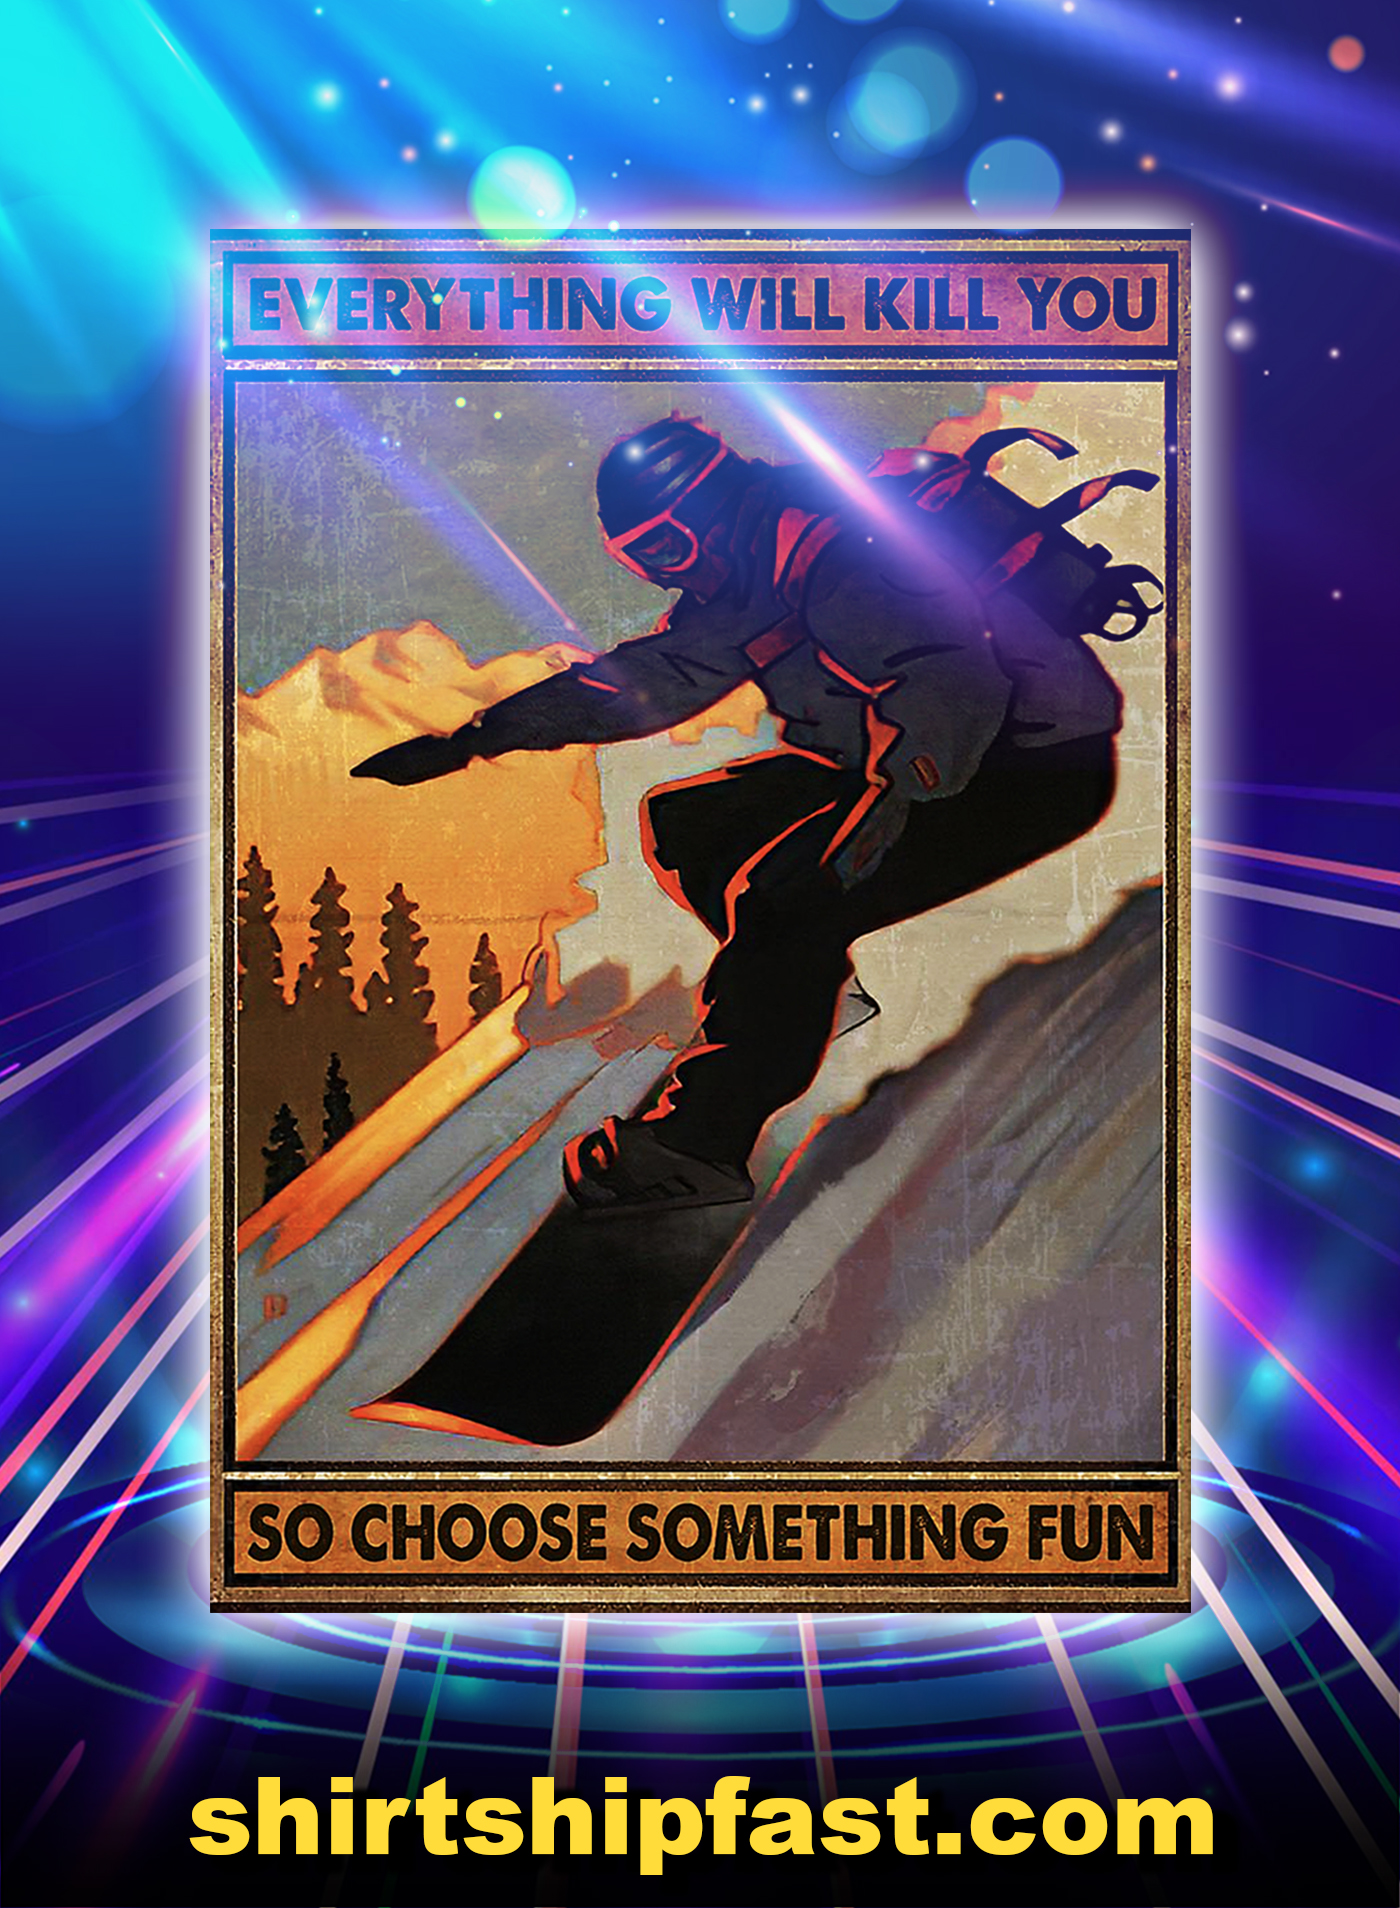 Snowboarding everything will kill you so choose something fun poster - A1